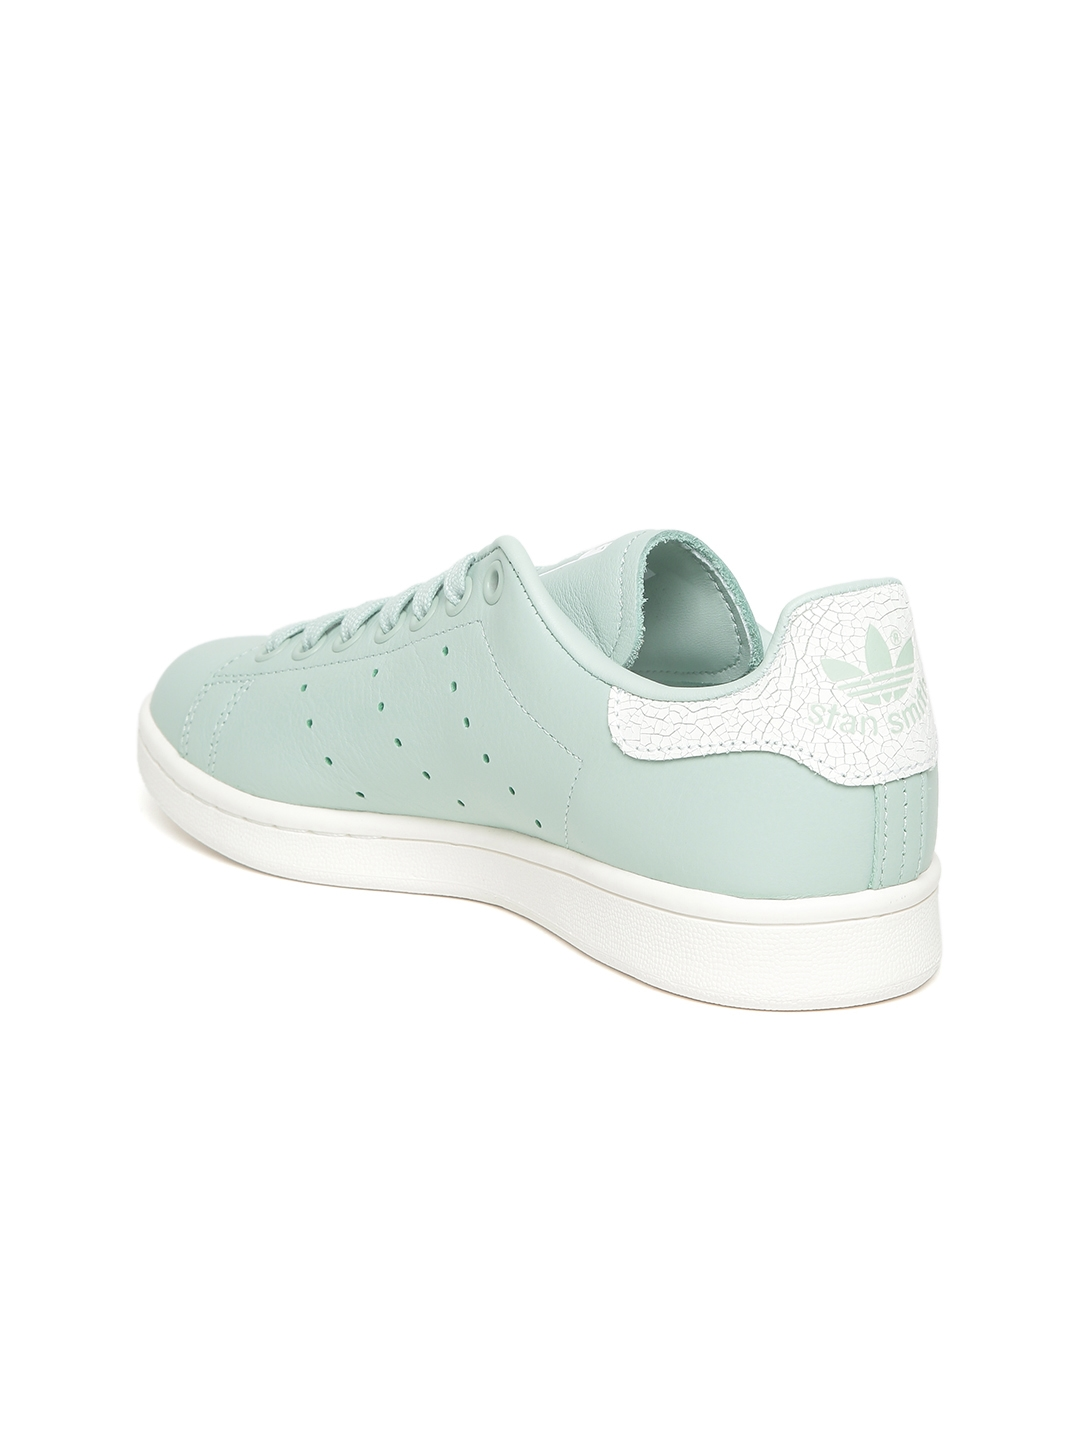 new arrival 813bf bc6ad ADIDAS Originals Women Mint Green Stan Smith Leather Sneakers